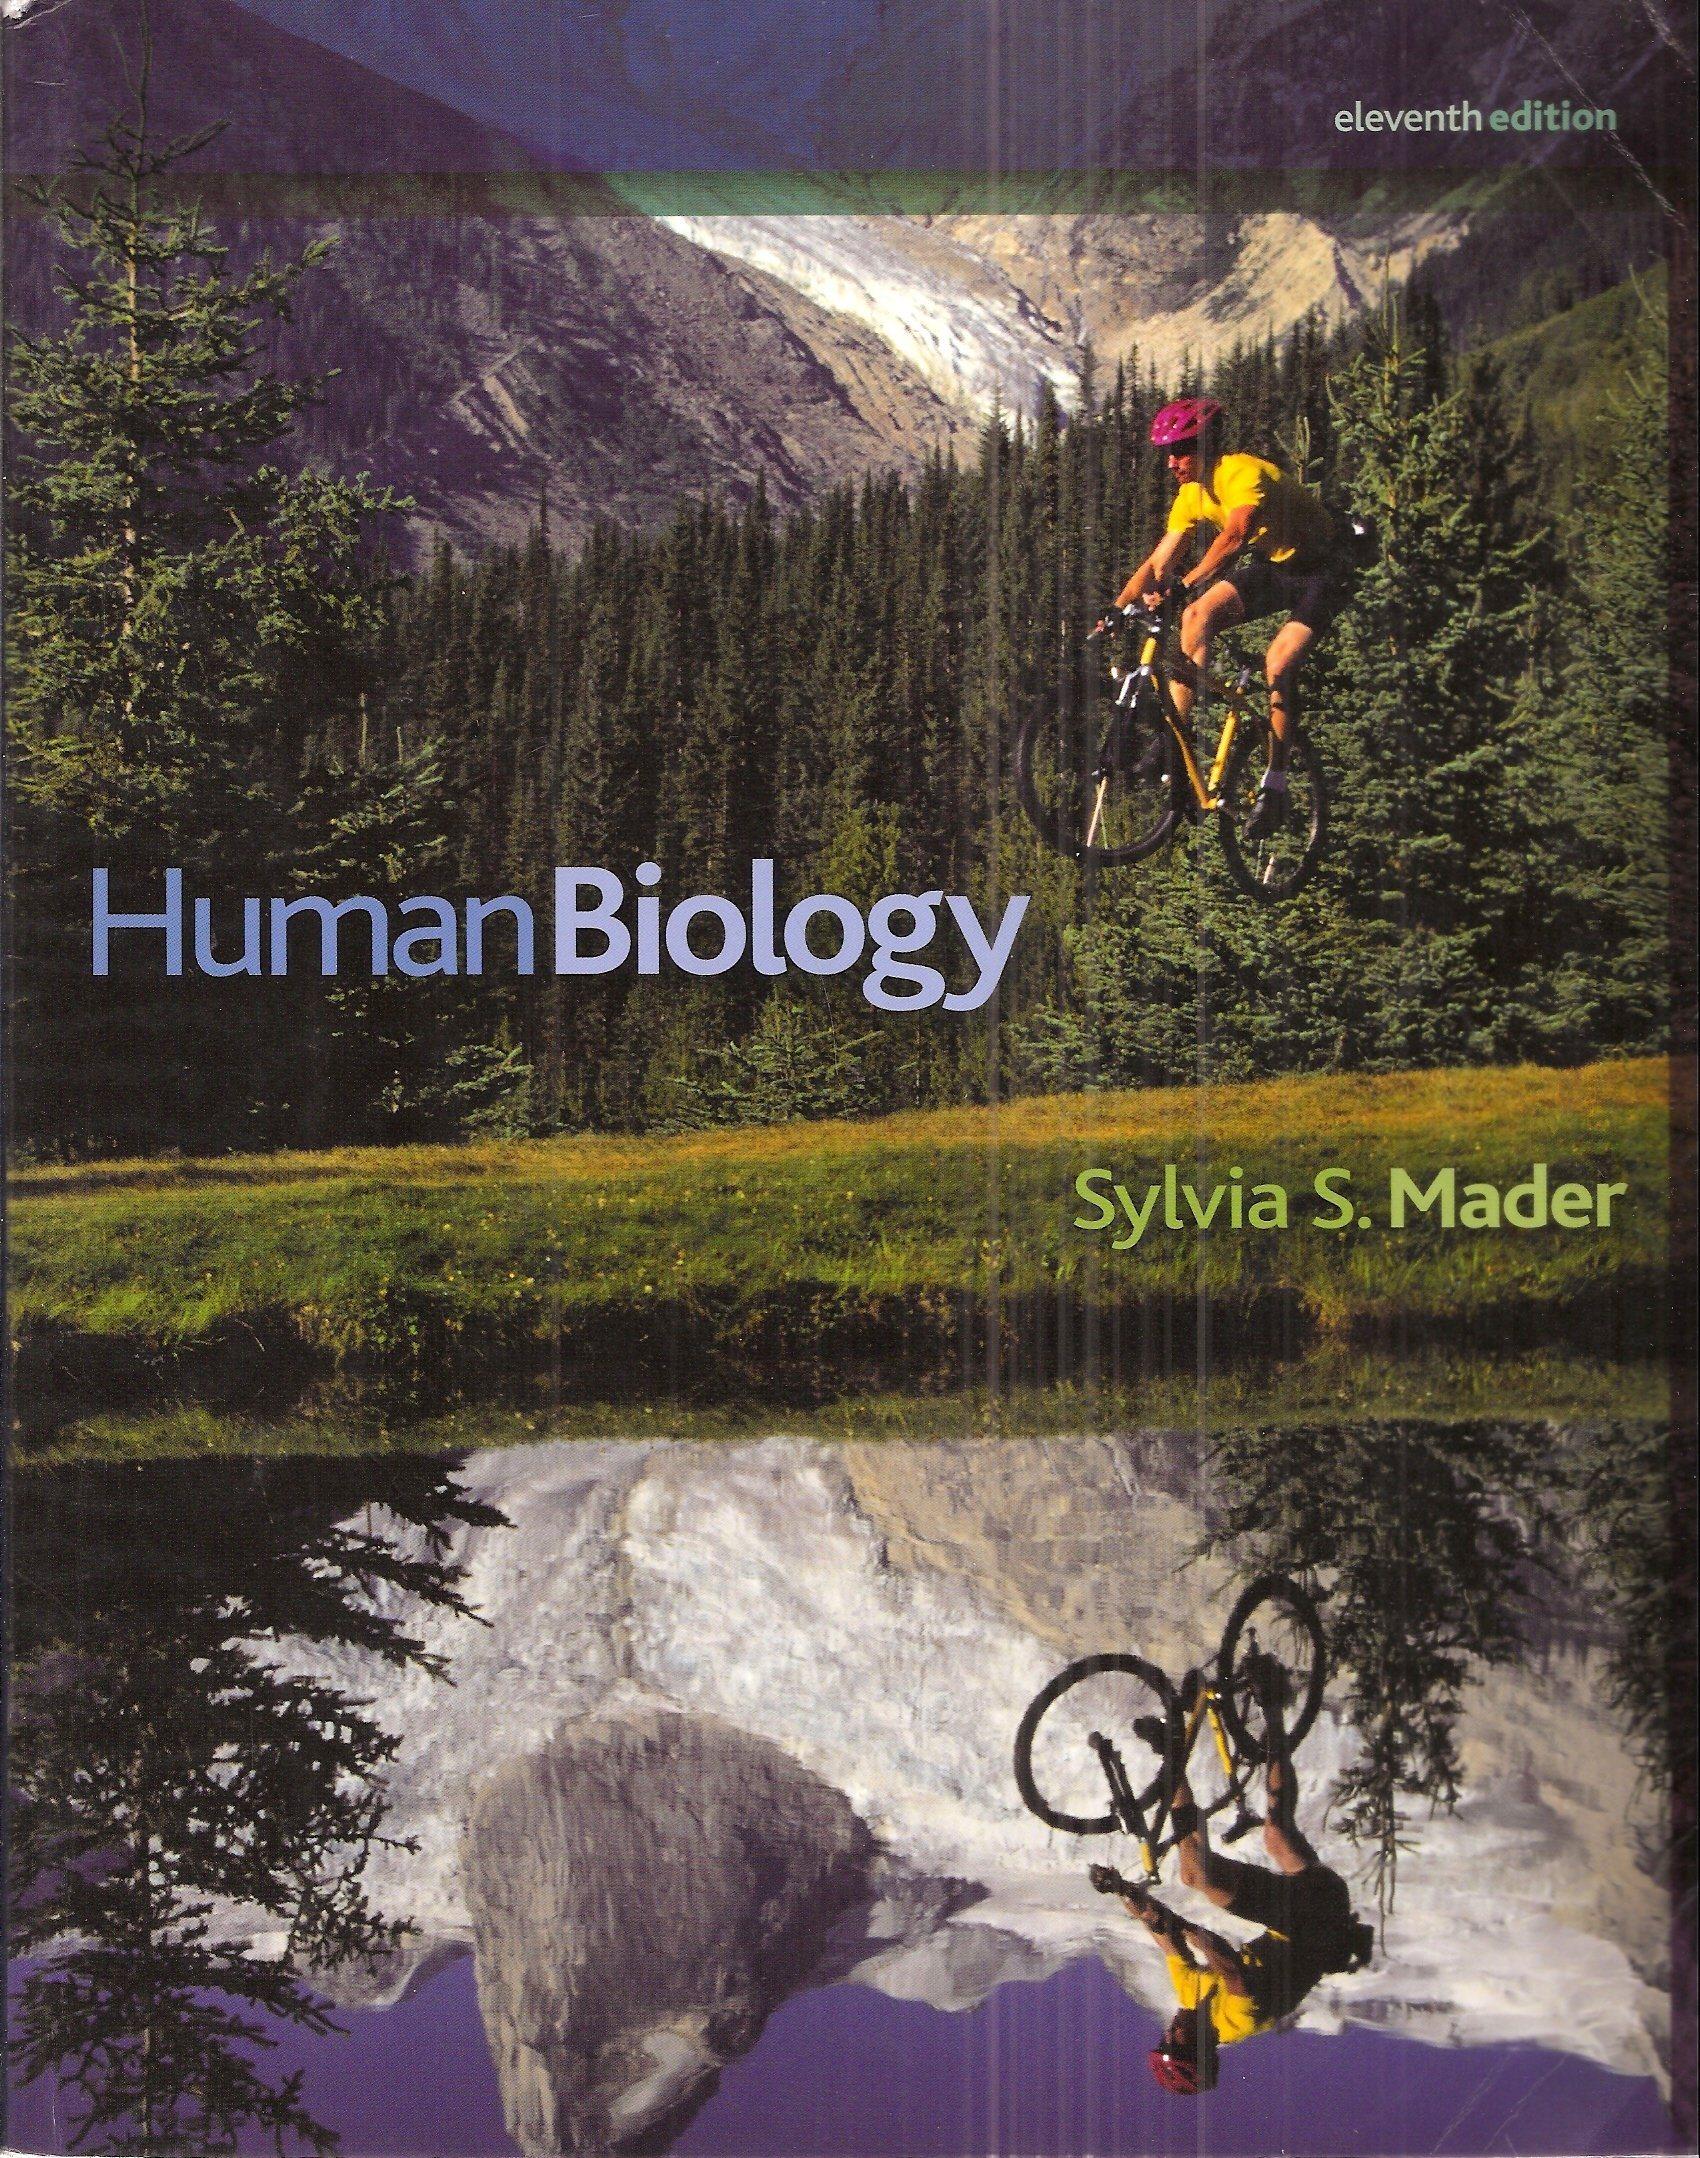 Human Biology, Eleventh Edition: Sylvia S. Mader: 9780073377988:  Amazon.com: Books